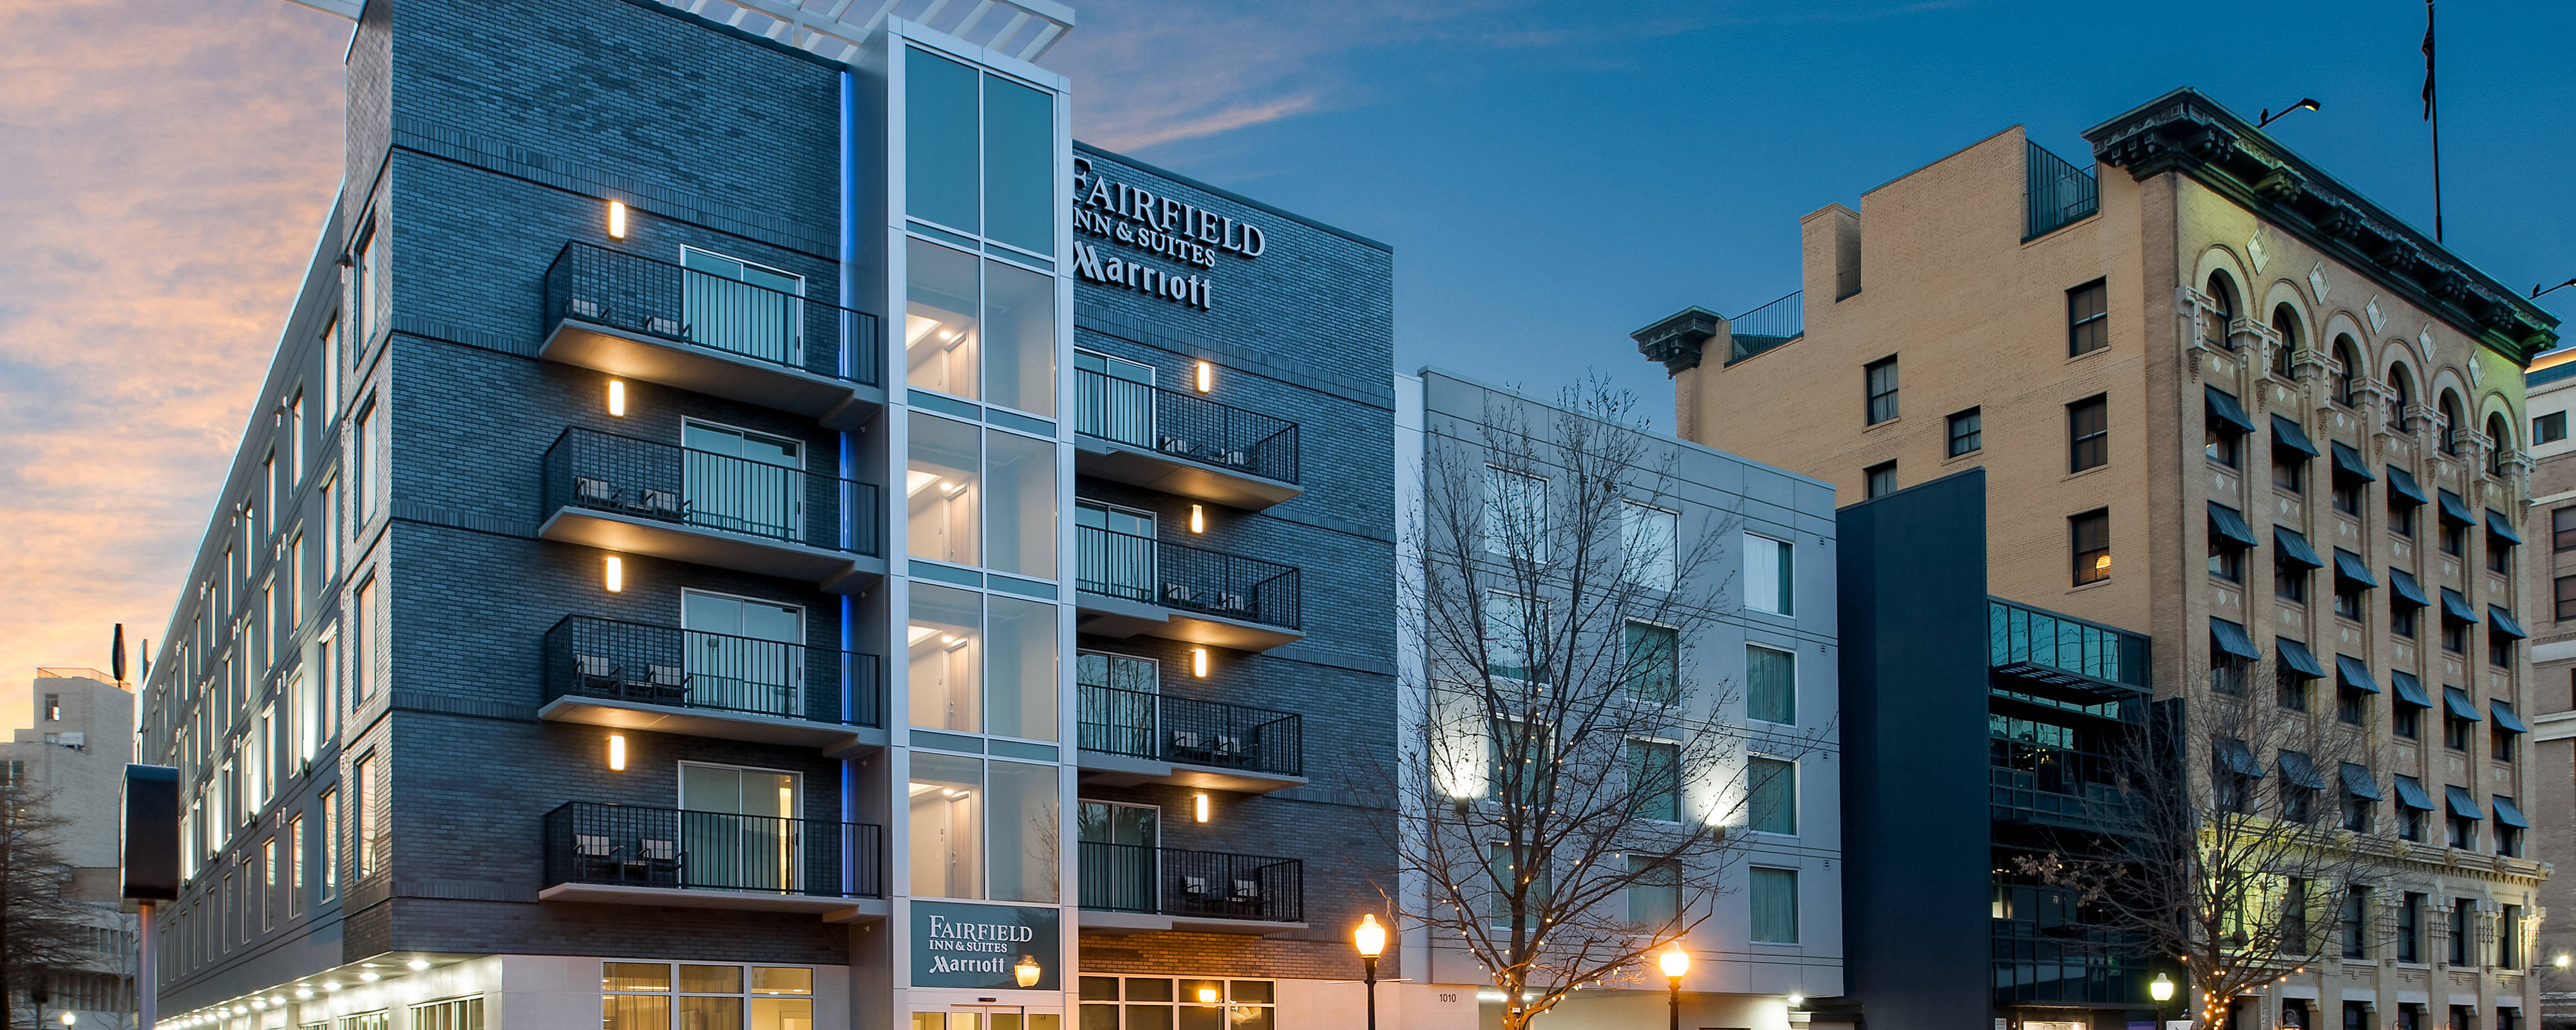 Business Hotel In Fort Worth | Fairfield Inn & Suites Fort Worth - Map Of Hotels Near Fort Worth Texas Convention Center